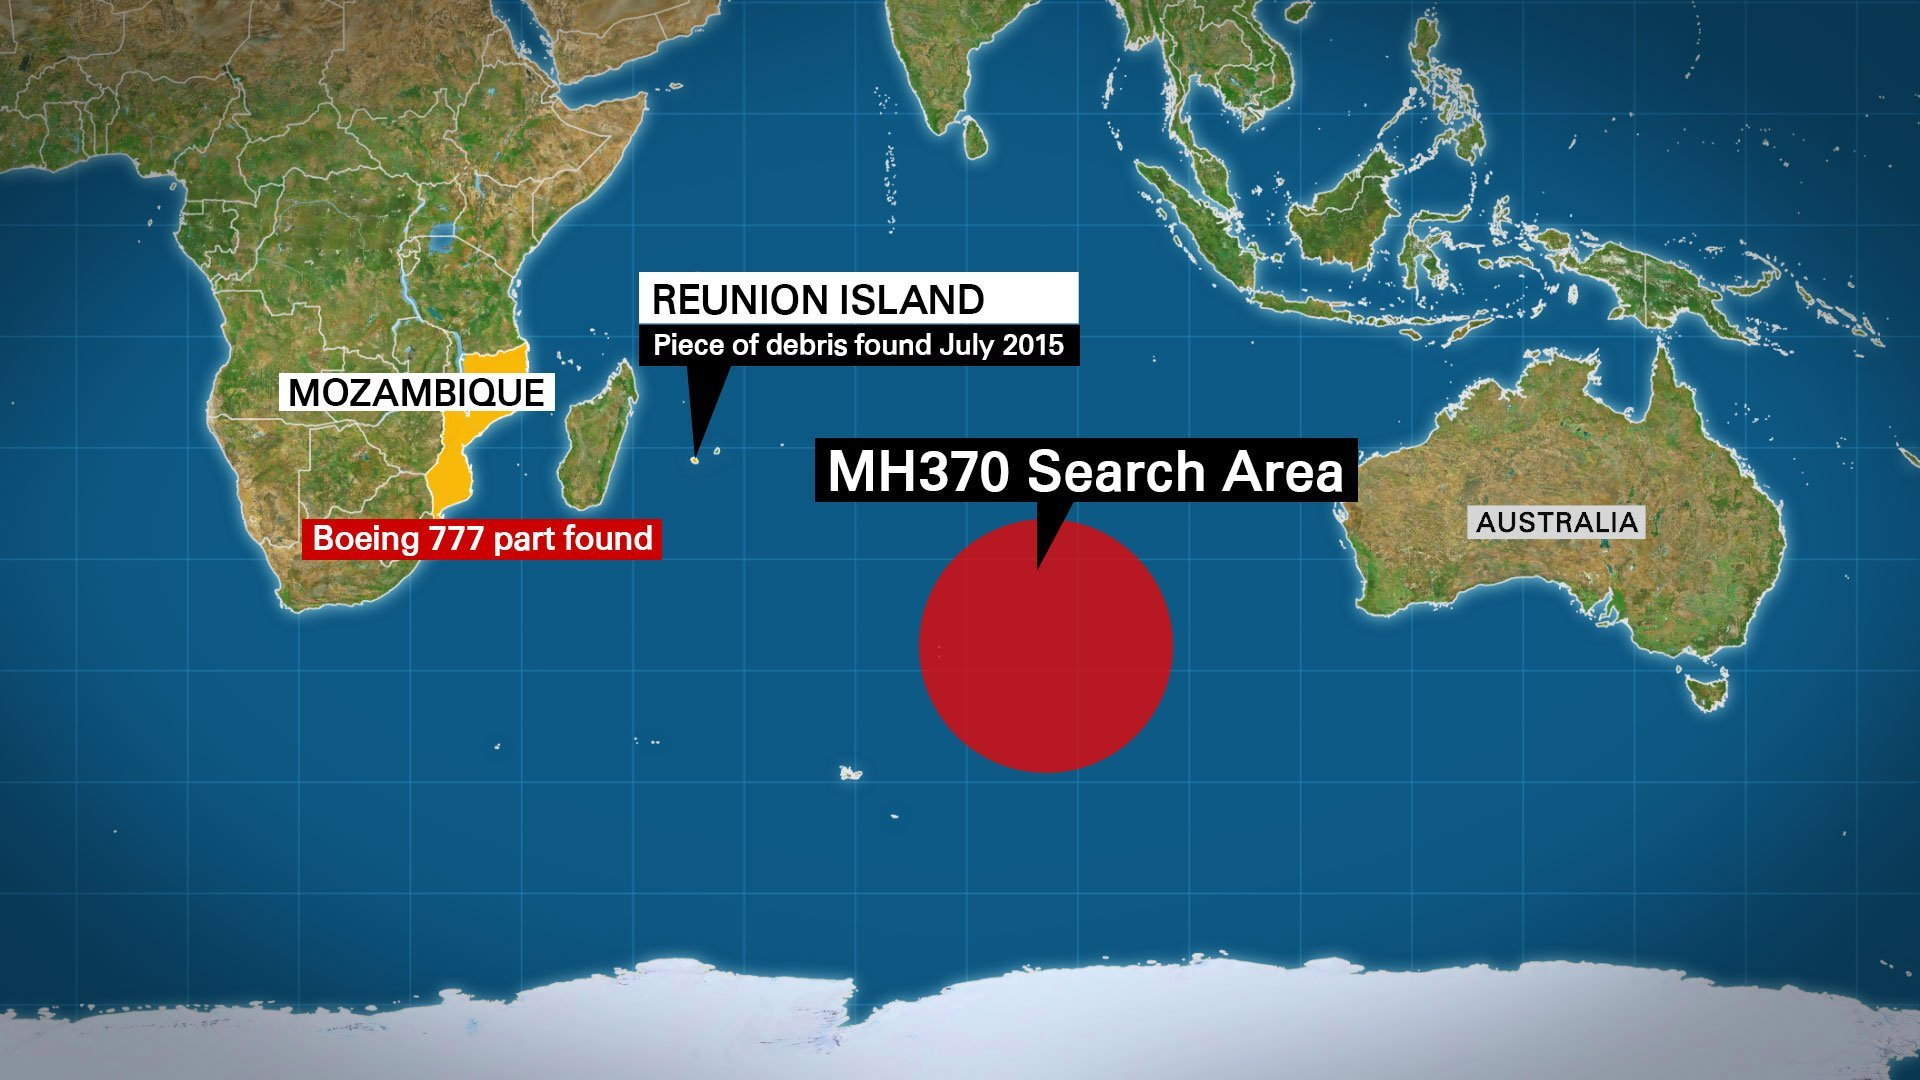 A piece of wreckage apparently from a Boeing 777 -- like the missing MH370 airliner -- was found washed ashore over the weekend on the coast of Mozambique, a U.S. official told CNN on Wednesday.